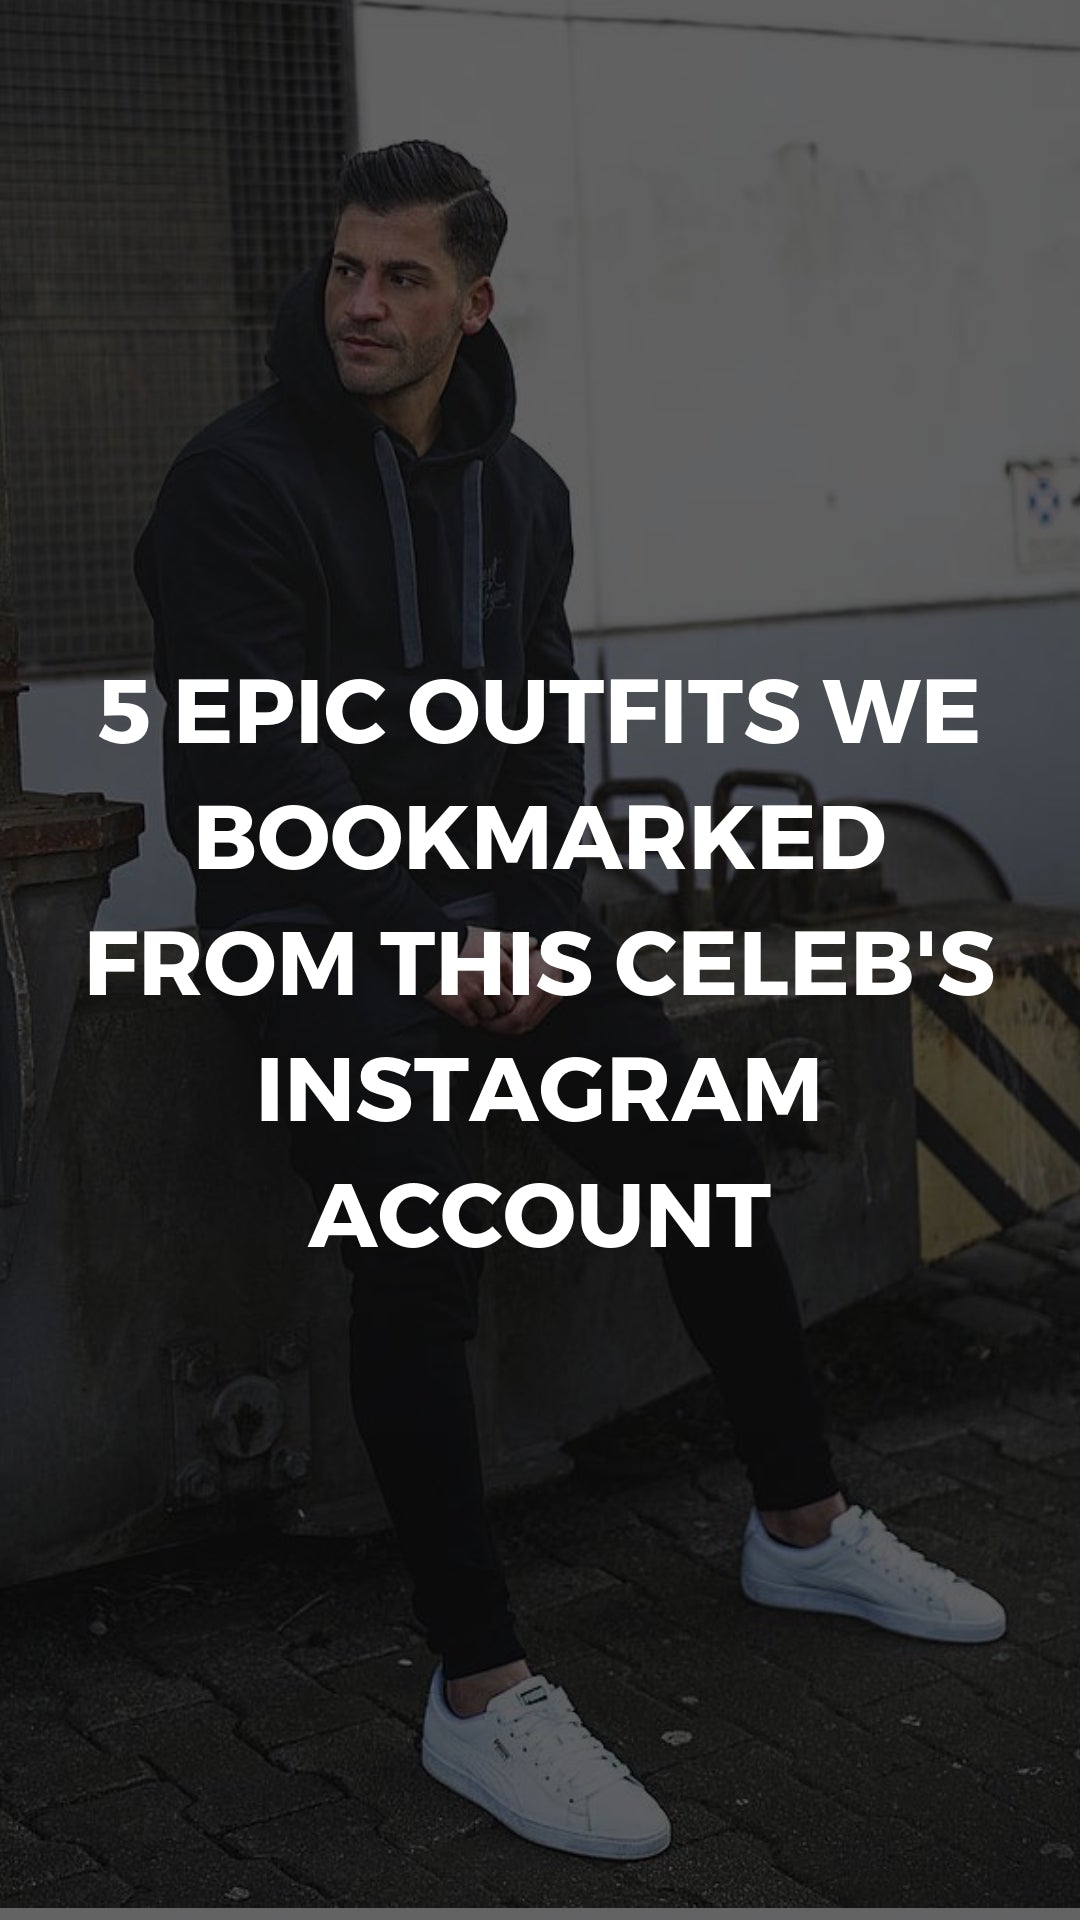 5 Epic Outfits We Bookmarked From This Celeb's Instagram Account #street #style #mens #fashion